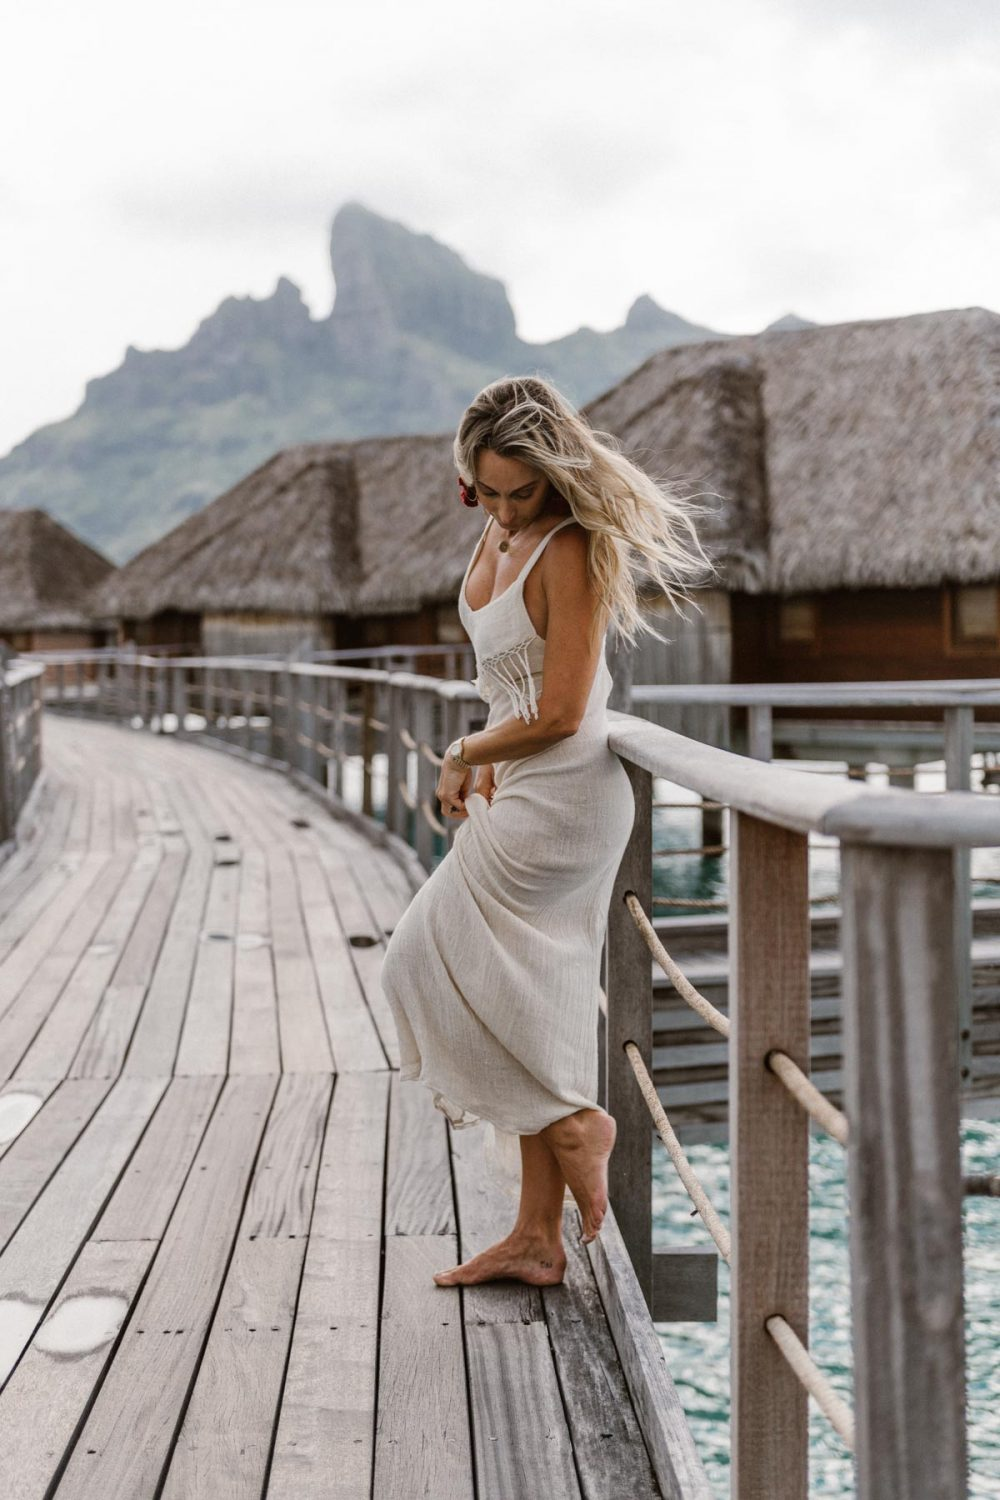 Fashion photoshoot at the Four Seasons Bora Bora